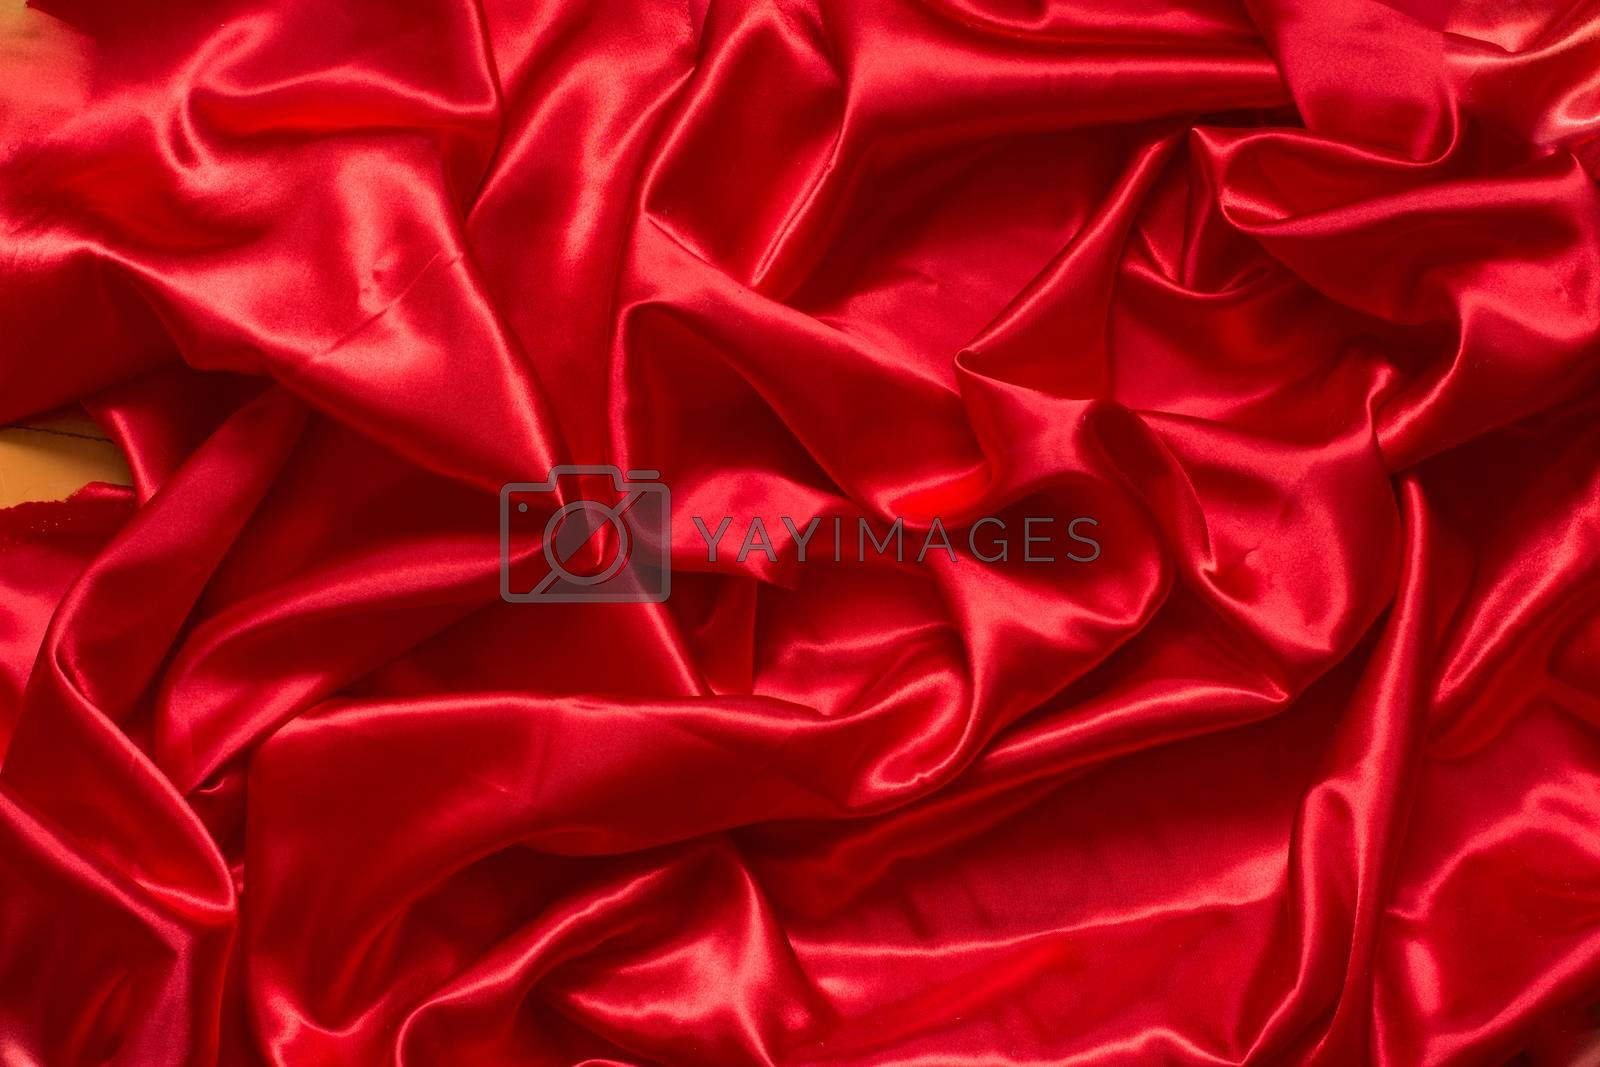 Royalty free image of Red satin/silk fabric  by Supertooper